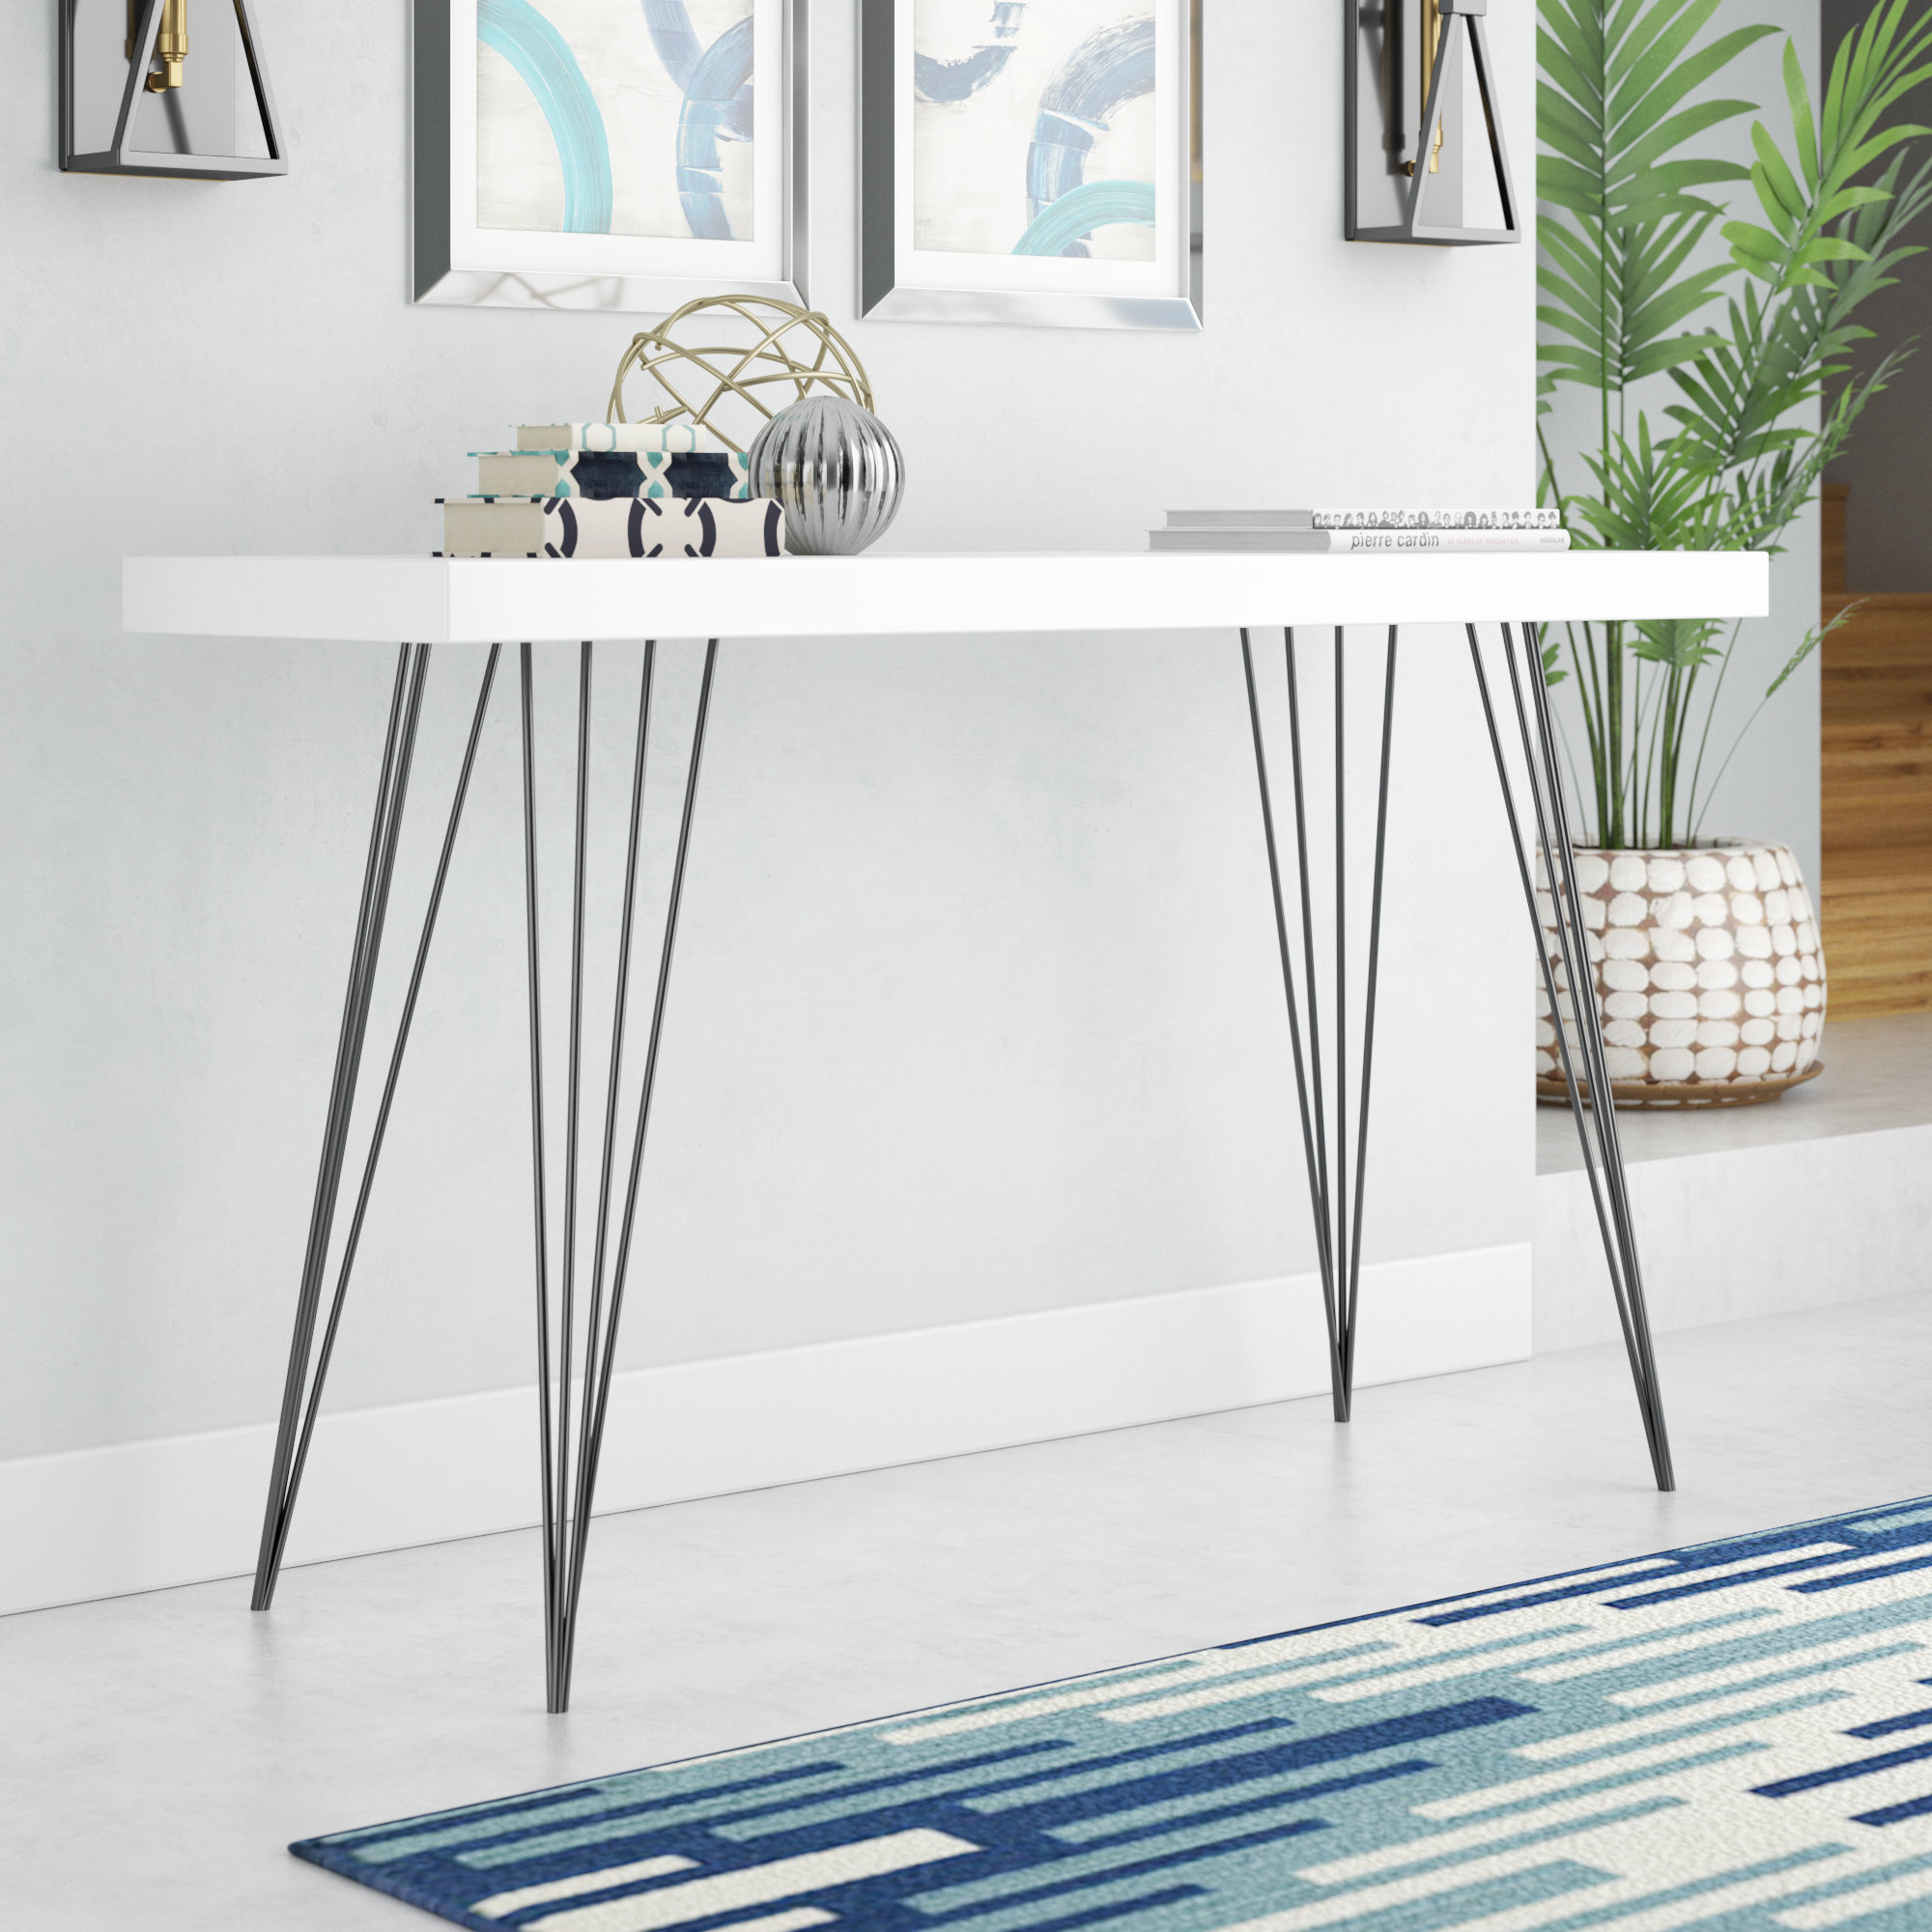 mercury row arcuri console table reviews mawr metal accent inch wide timber legs island county grey wicker patio furniture painted white marble coffee acrylic round clearance